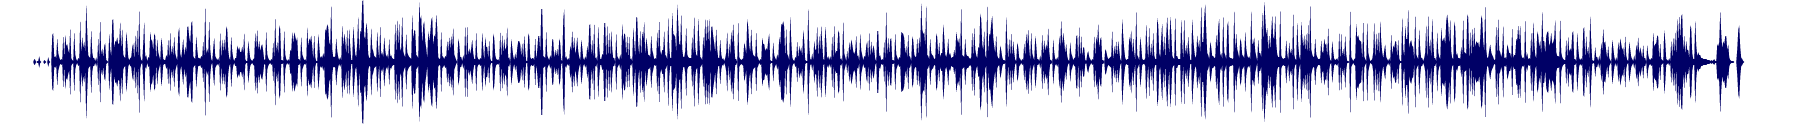 waveform of track #69973